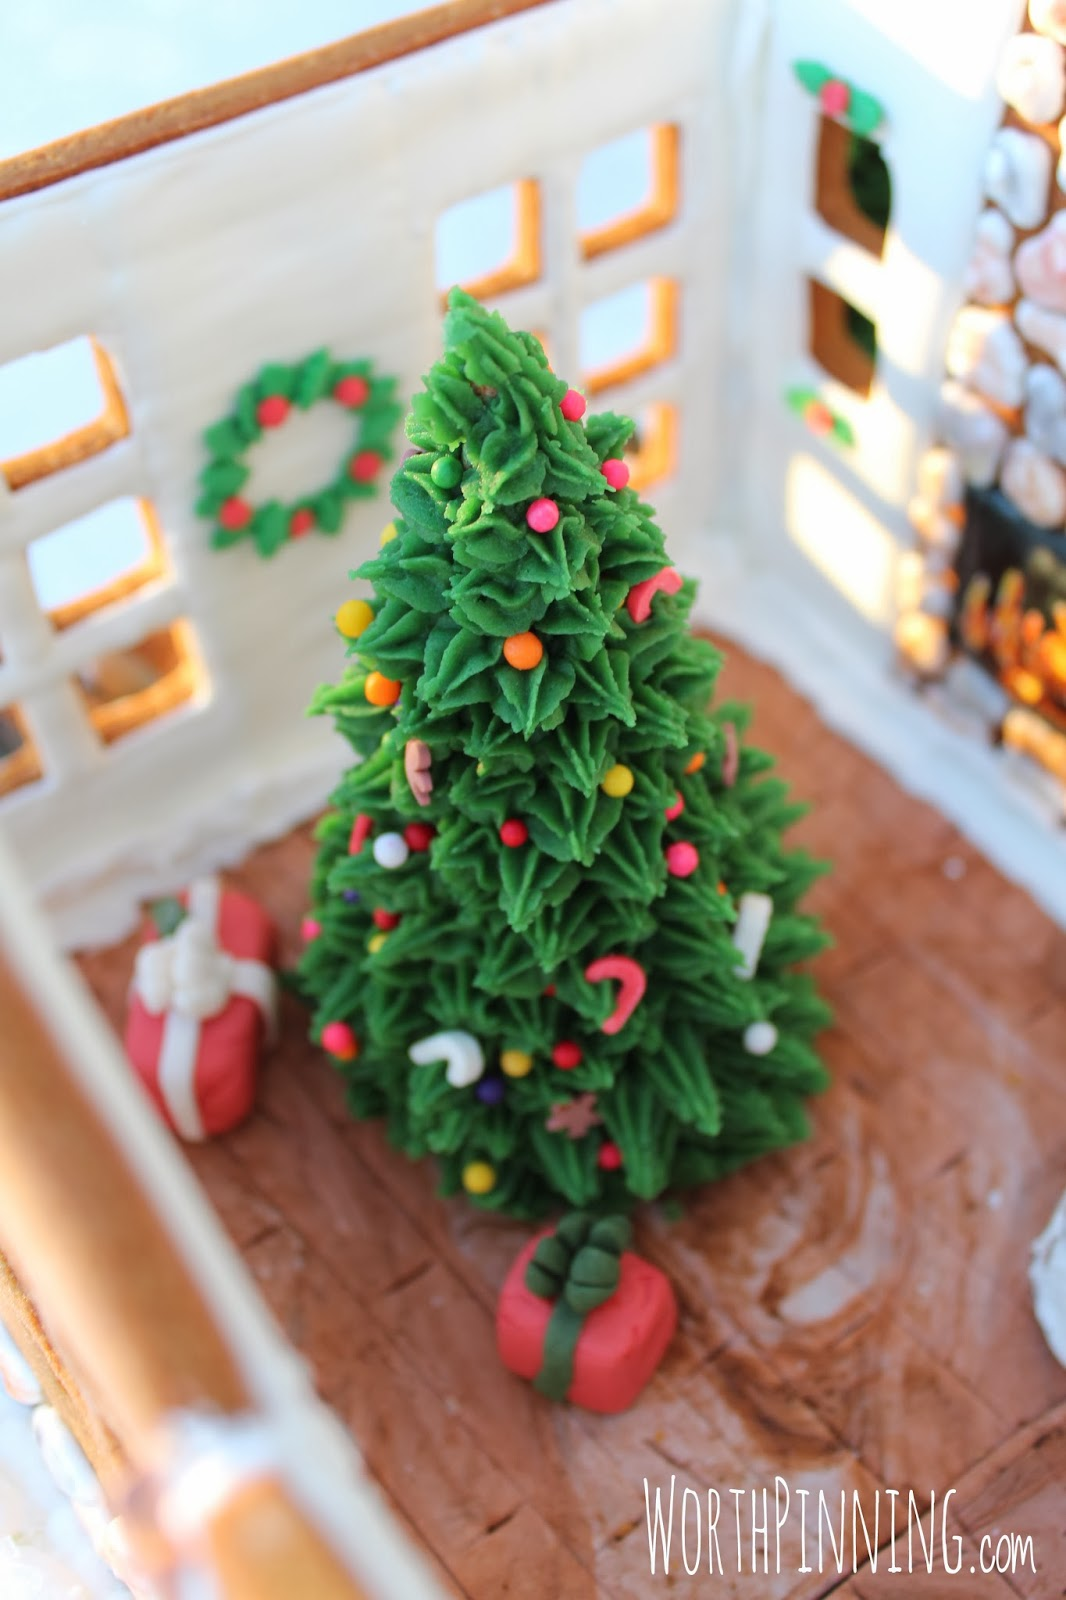 Edible Gingerbread Christmas Tree Decorations : Worth pinning interior of gingerbread house